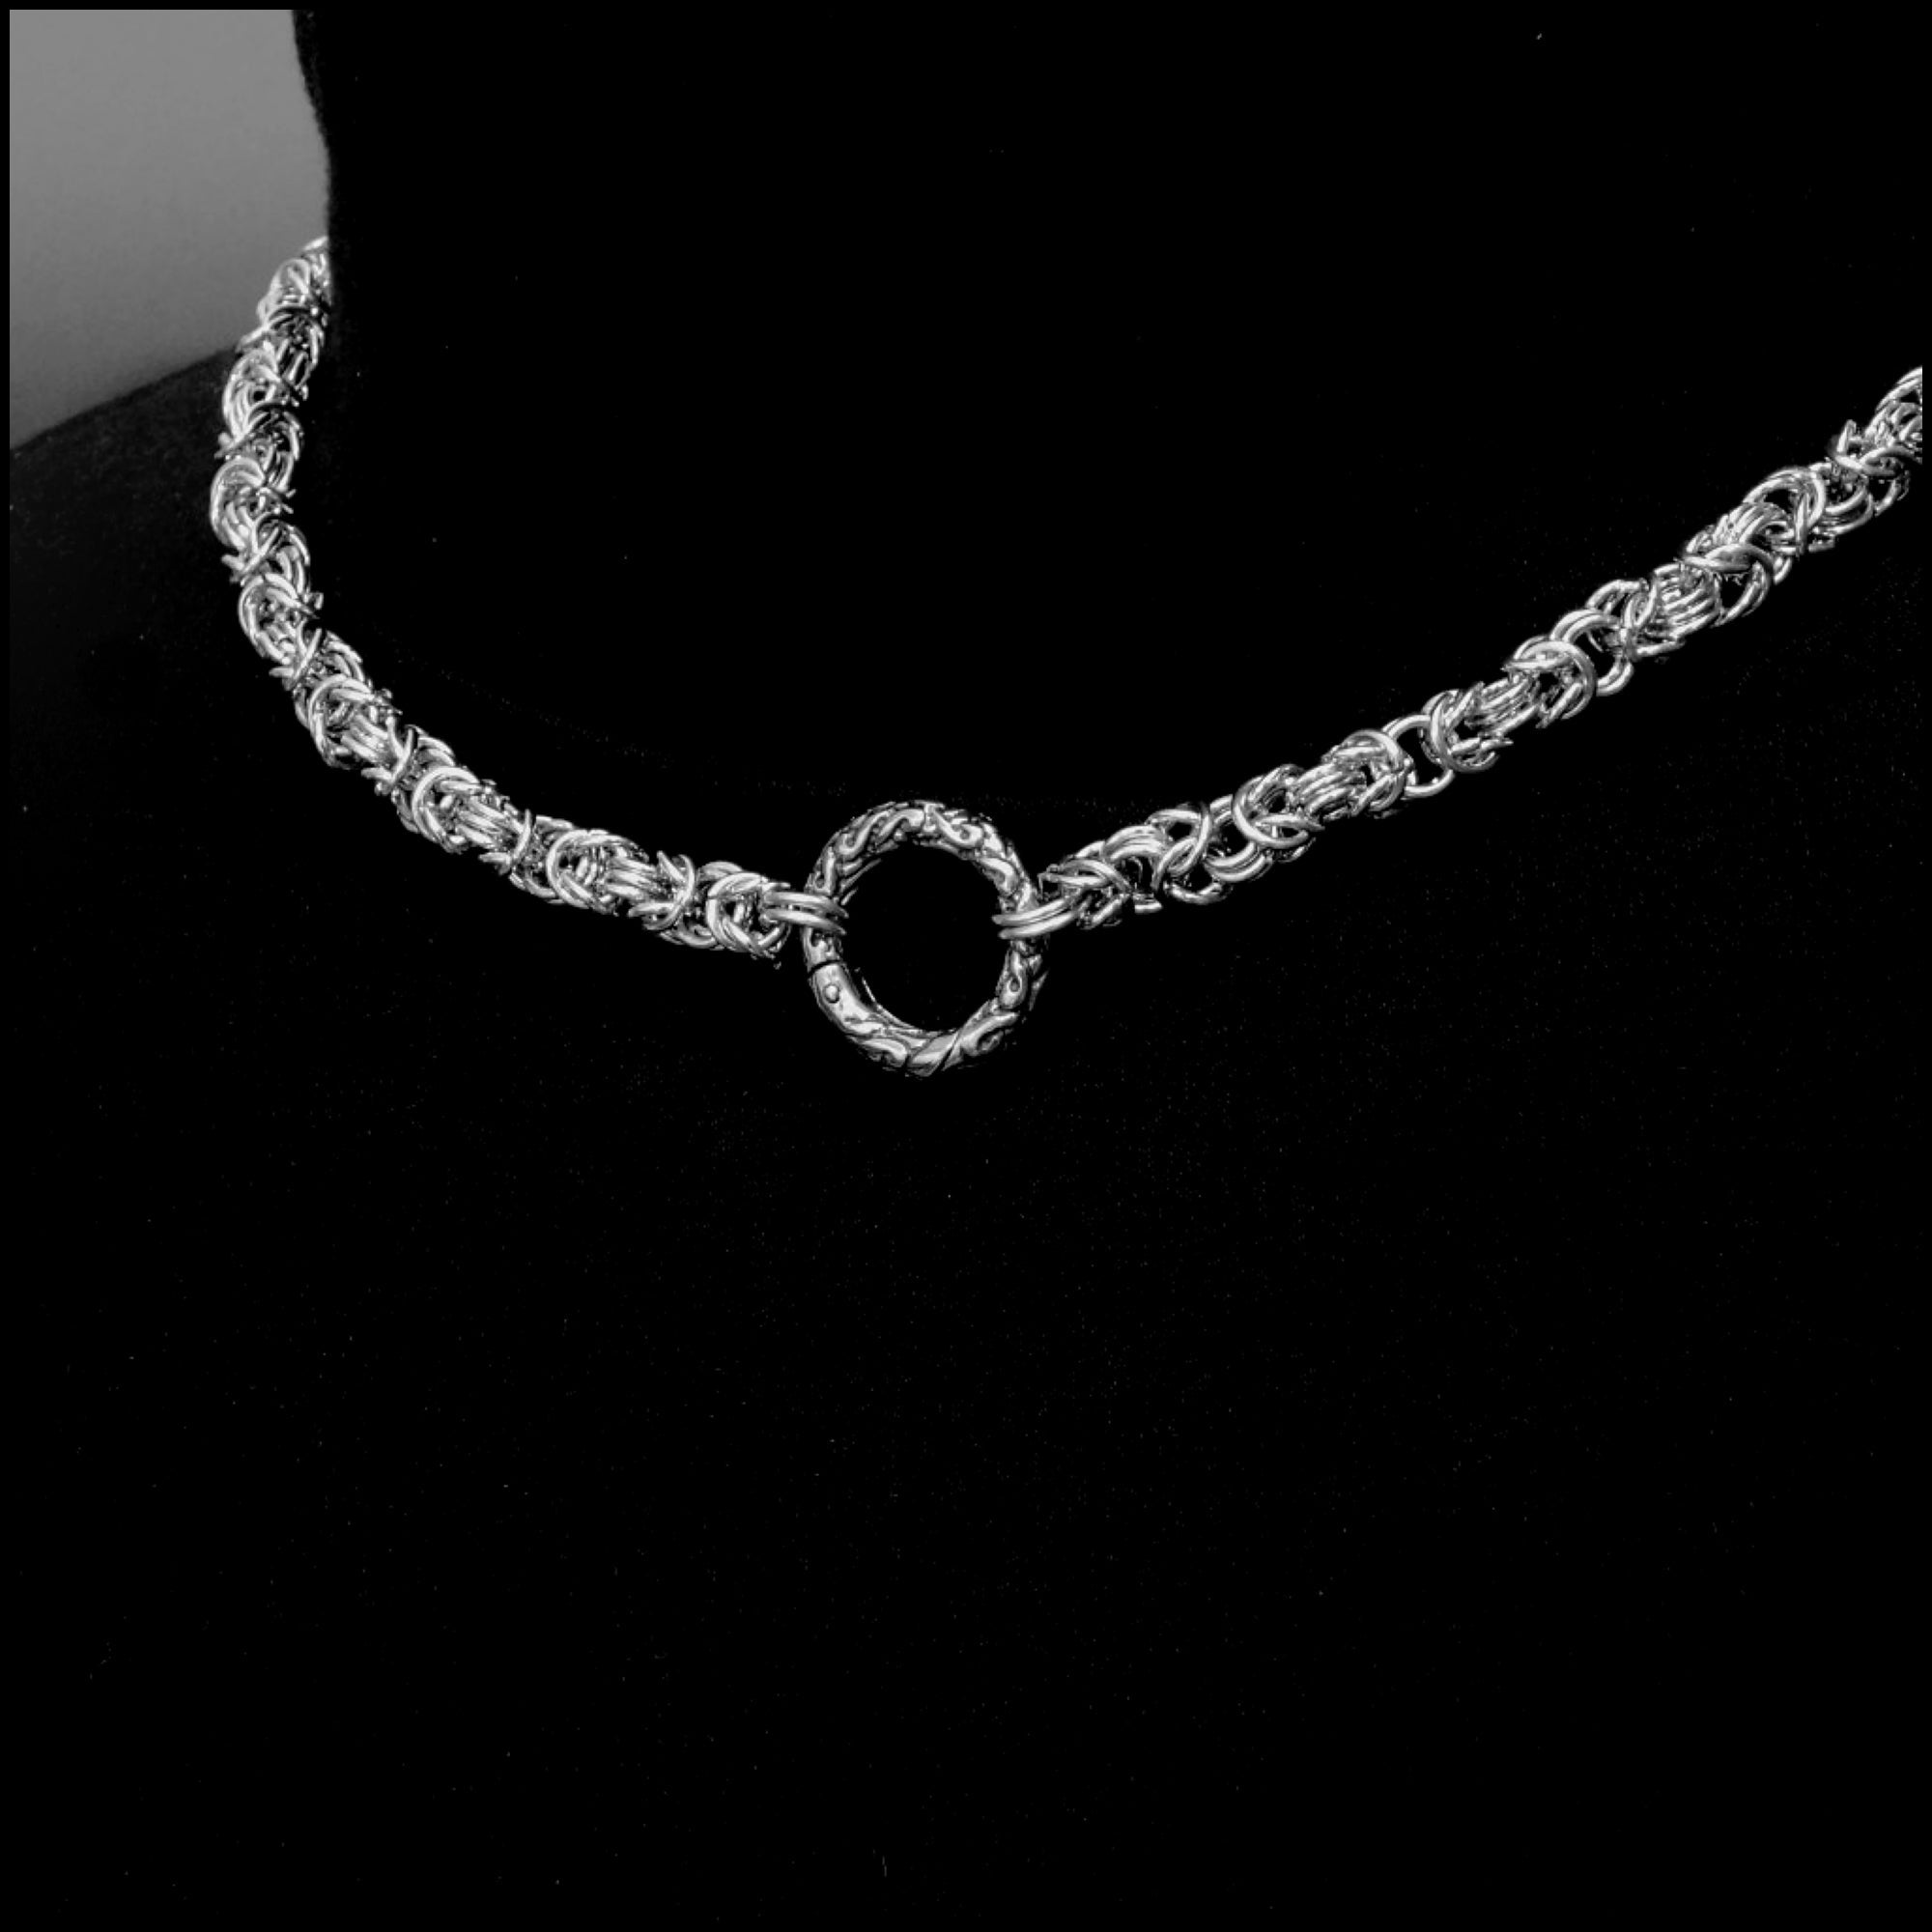 Discreet Chainmaille Day Collar with Beautifully Sculptured Ancient Design Connector Ring